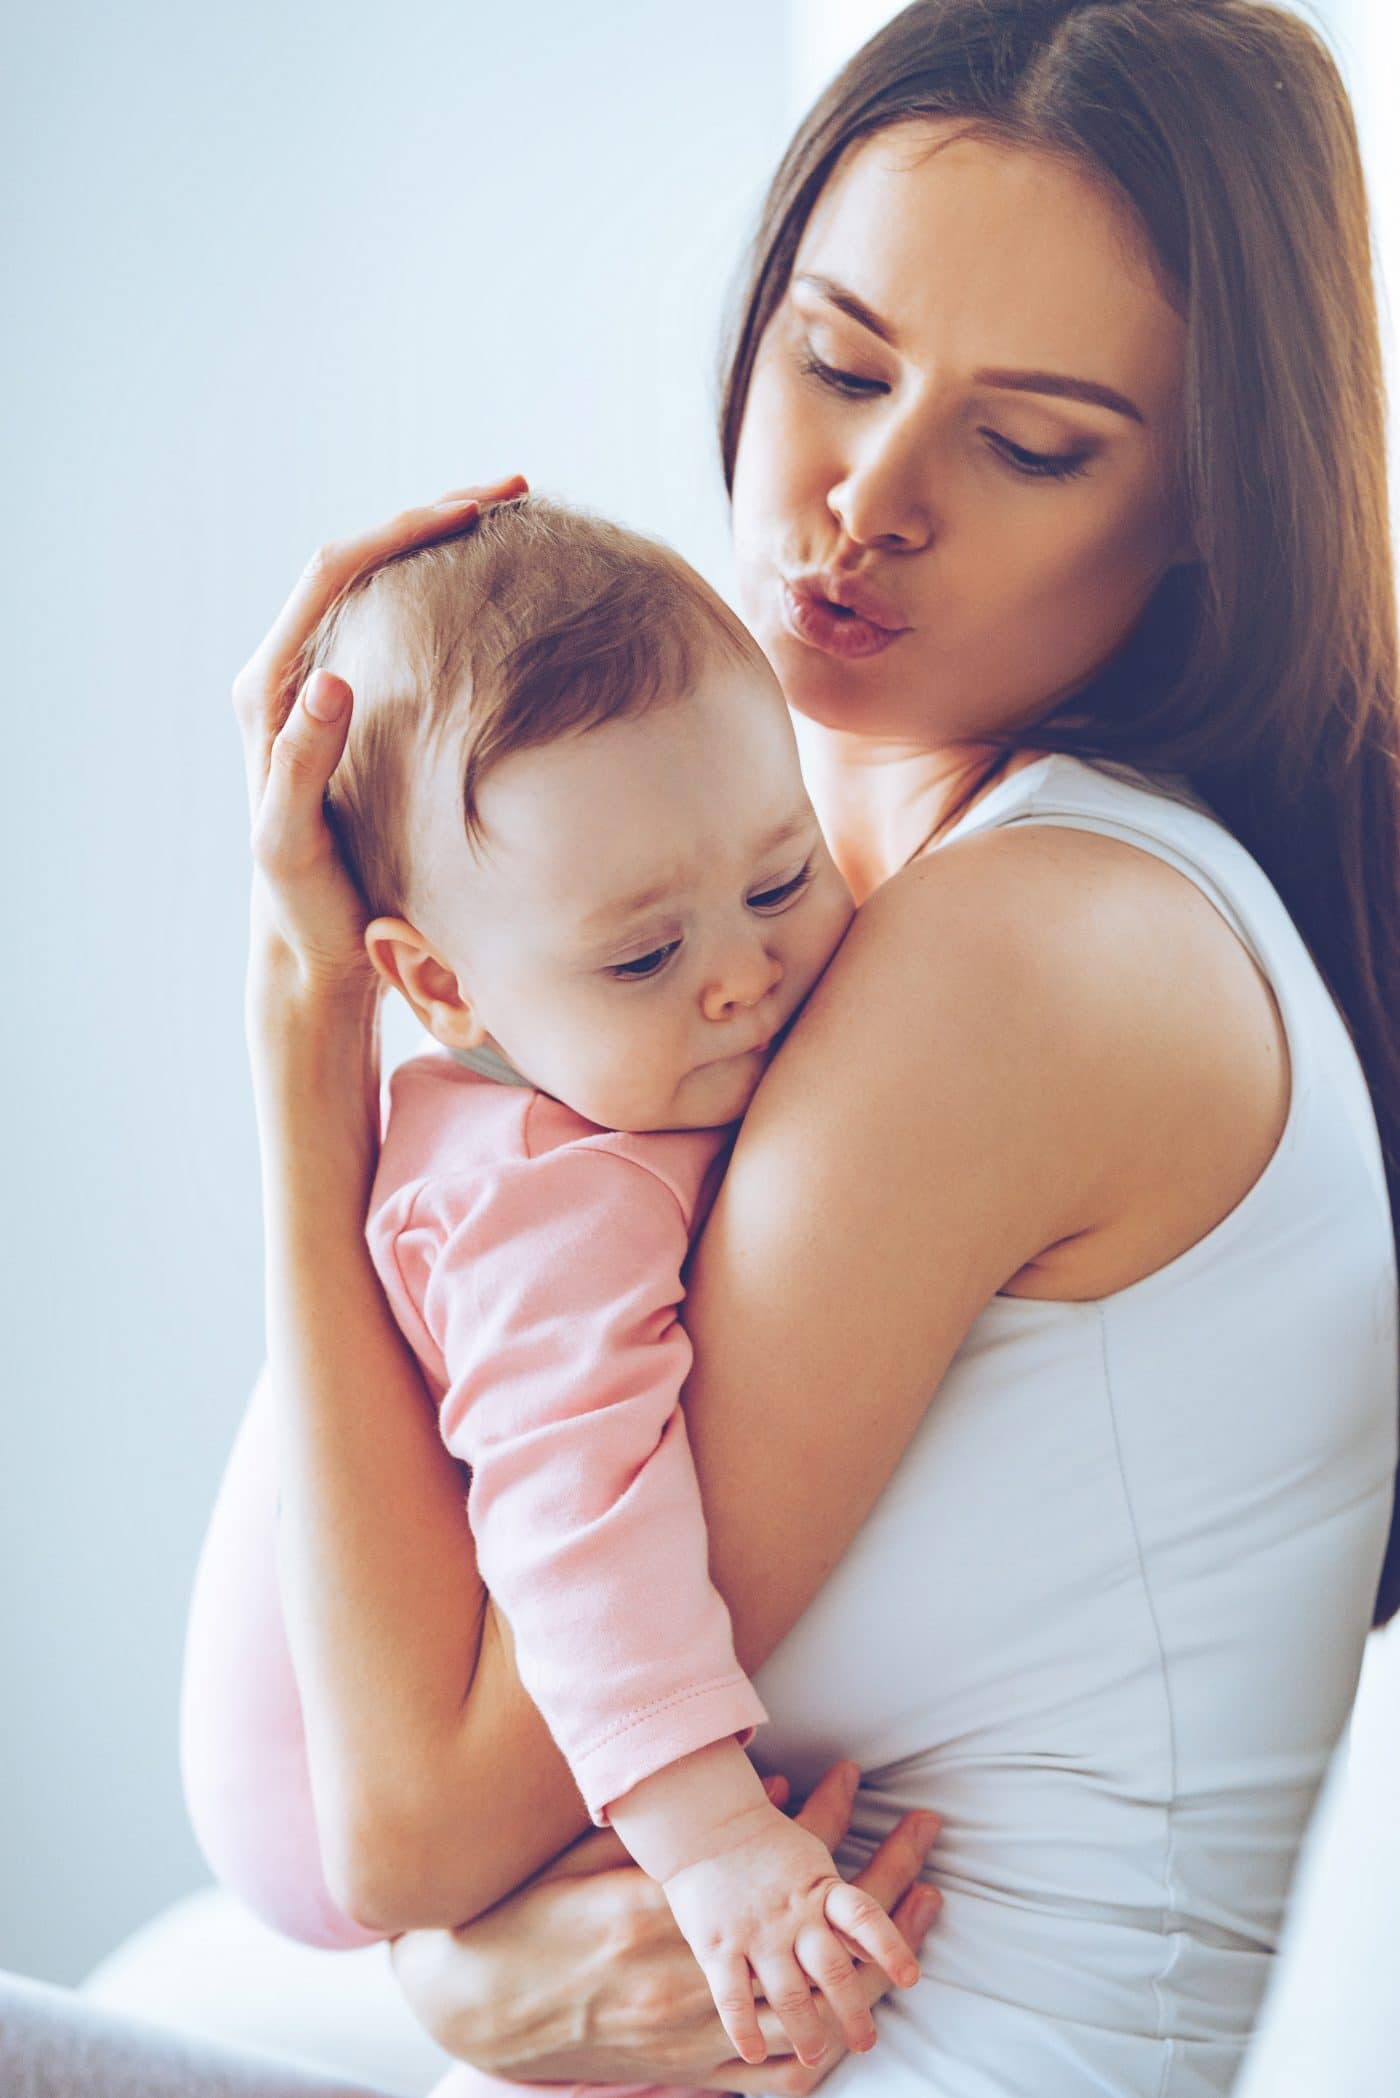 Side view of beautiful young woman calming down her baby girl while holding her in her arms at home